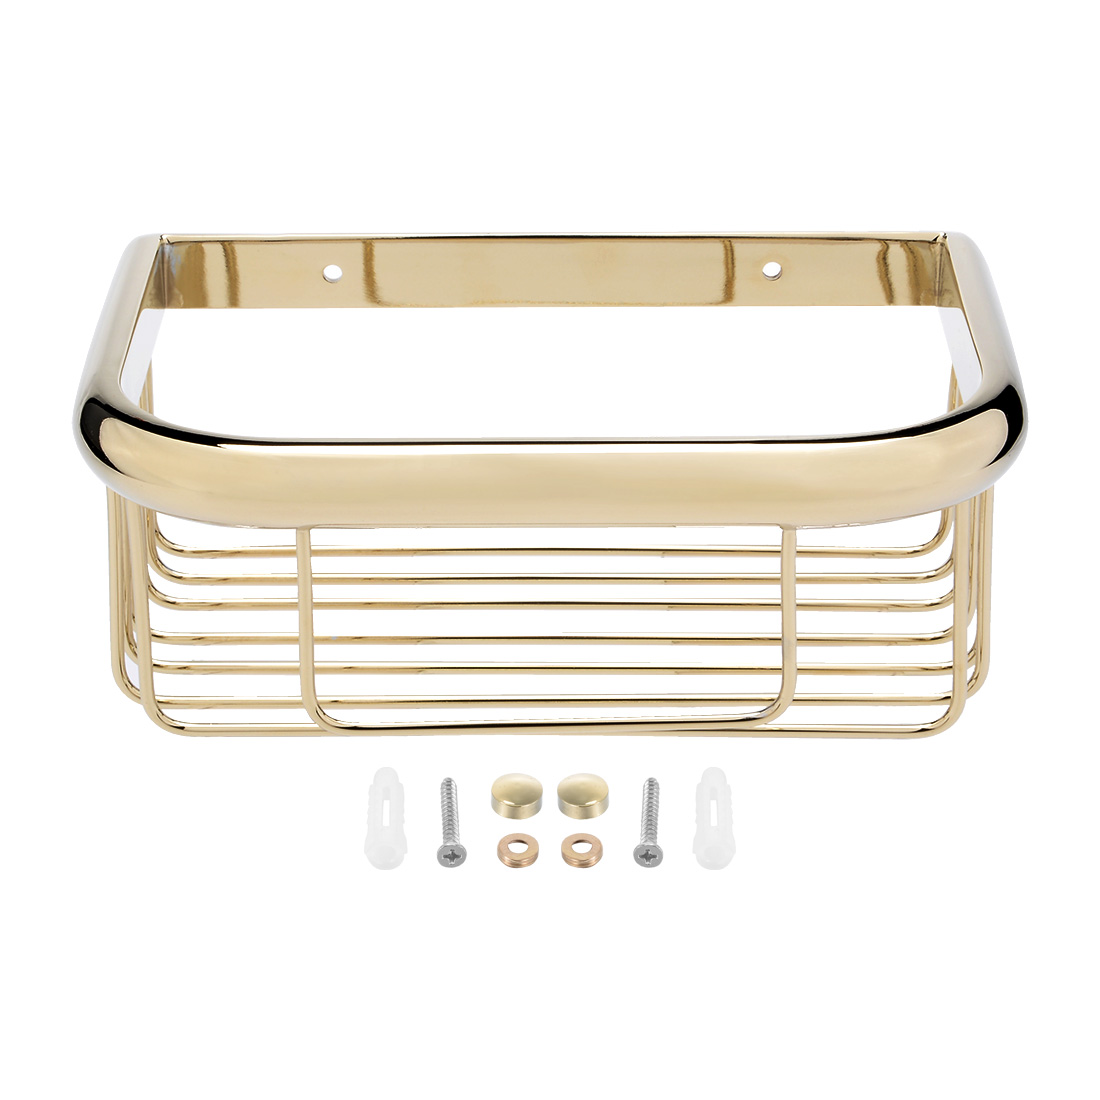 Click here to buy 8-inch Length Brass Rectangle Shape Bathroom Shower Caddy Basket Gold Tone.